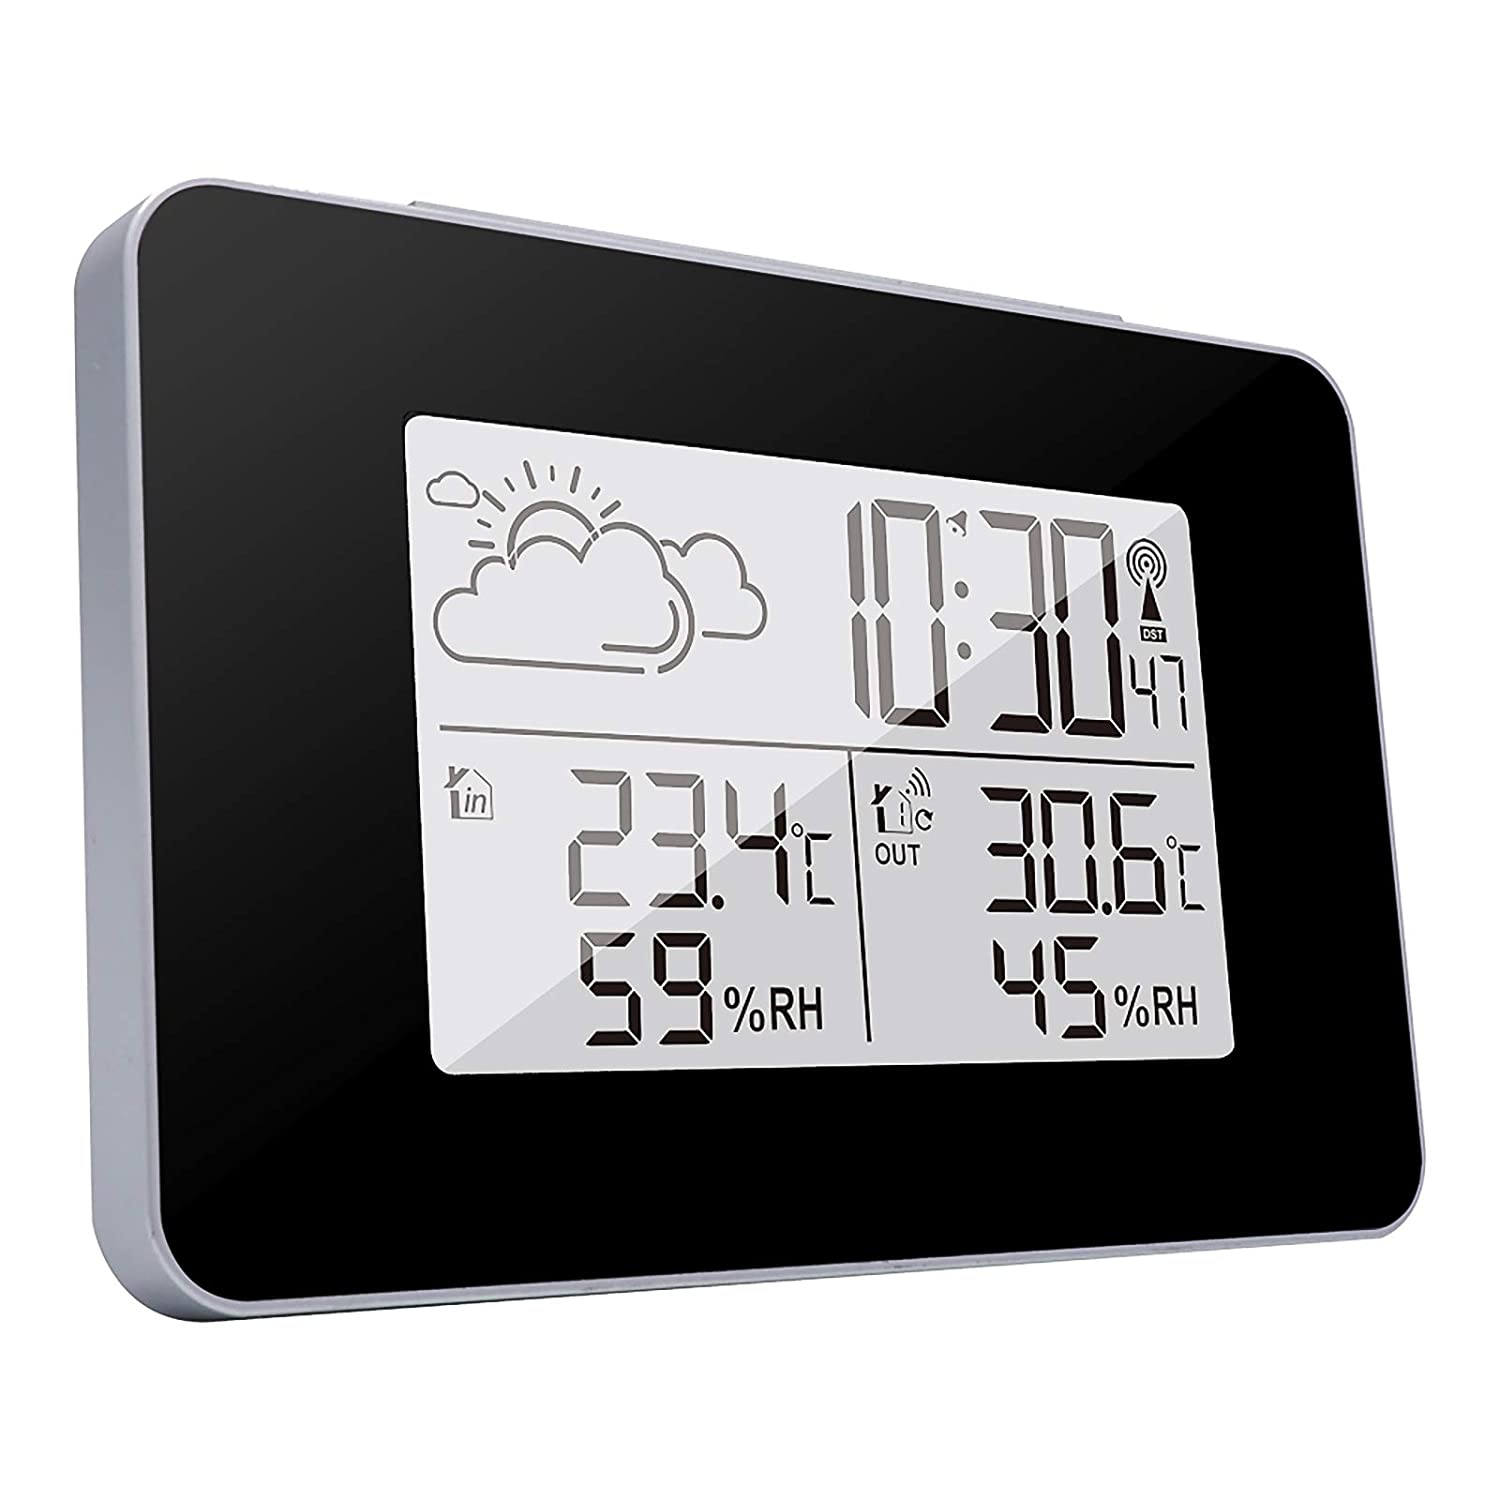 ONEVER Weather Station Wireless Inventory Detroit Mall cleanup selling sale Indoor Colo Thermometer Outdoor